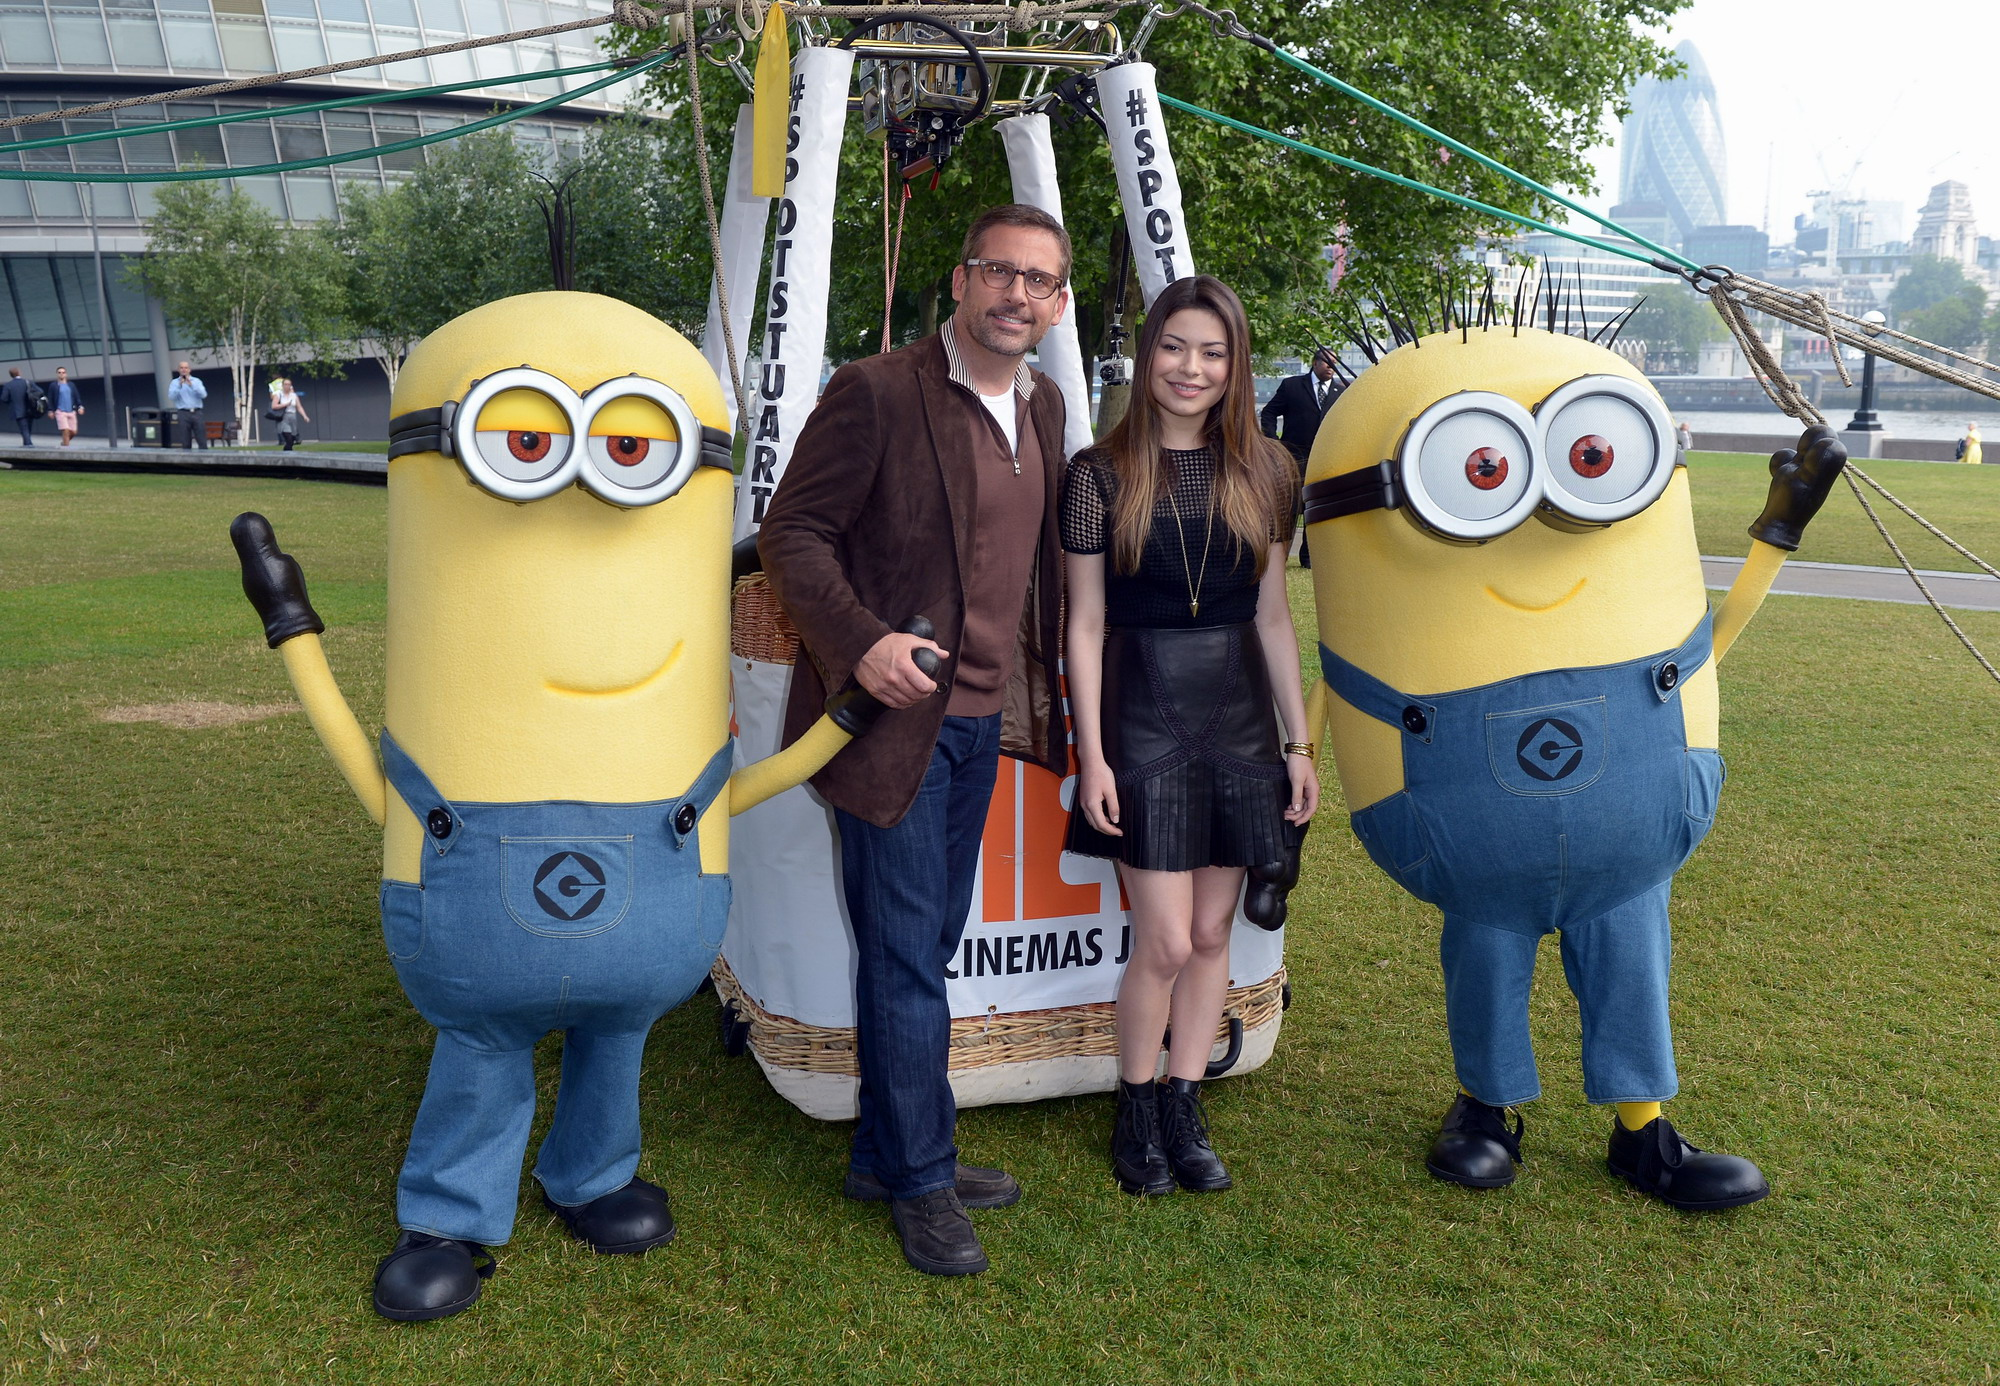 MirandaCosgrove_DispicableMe2Photocall_London_1_